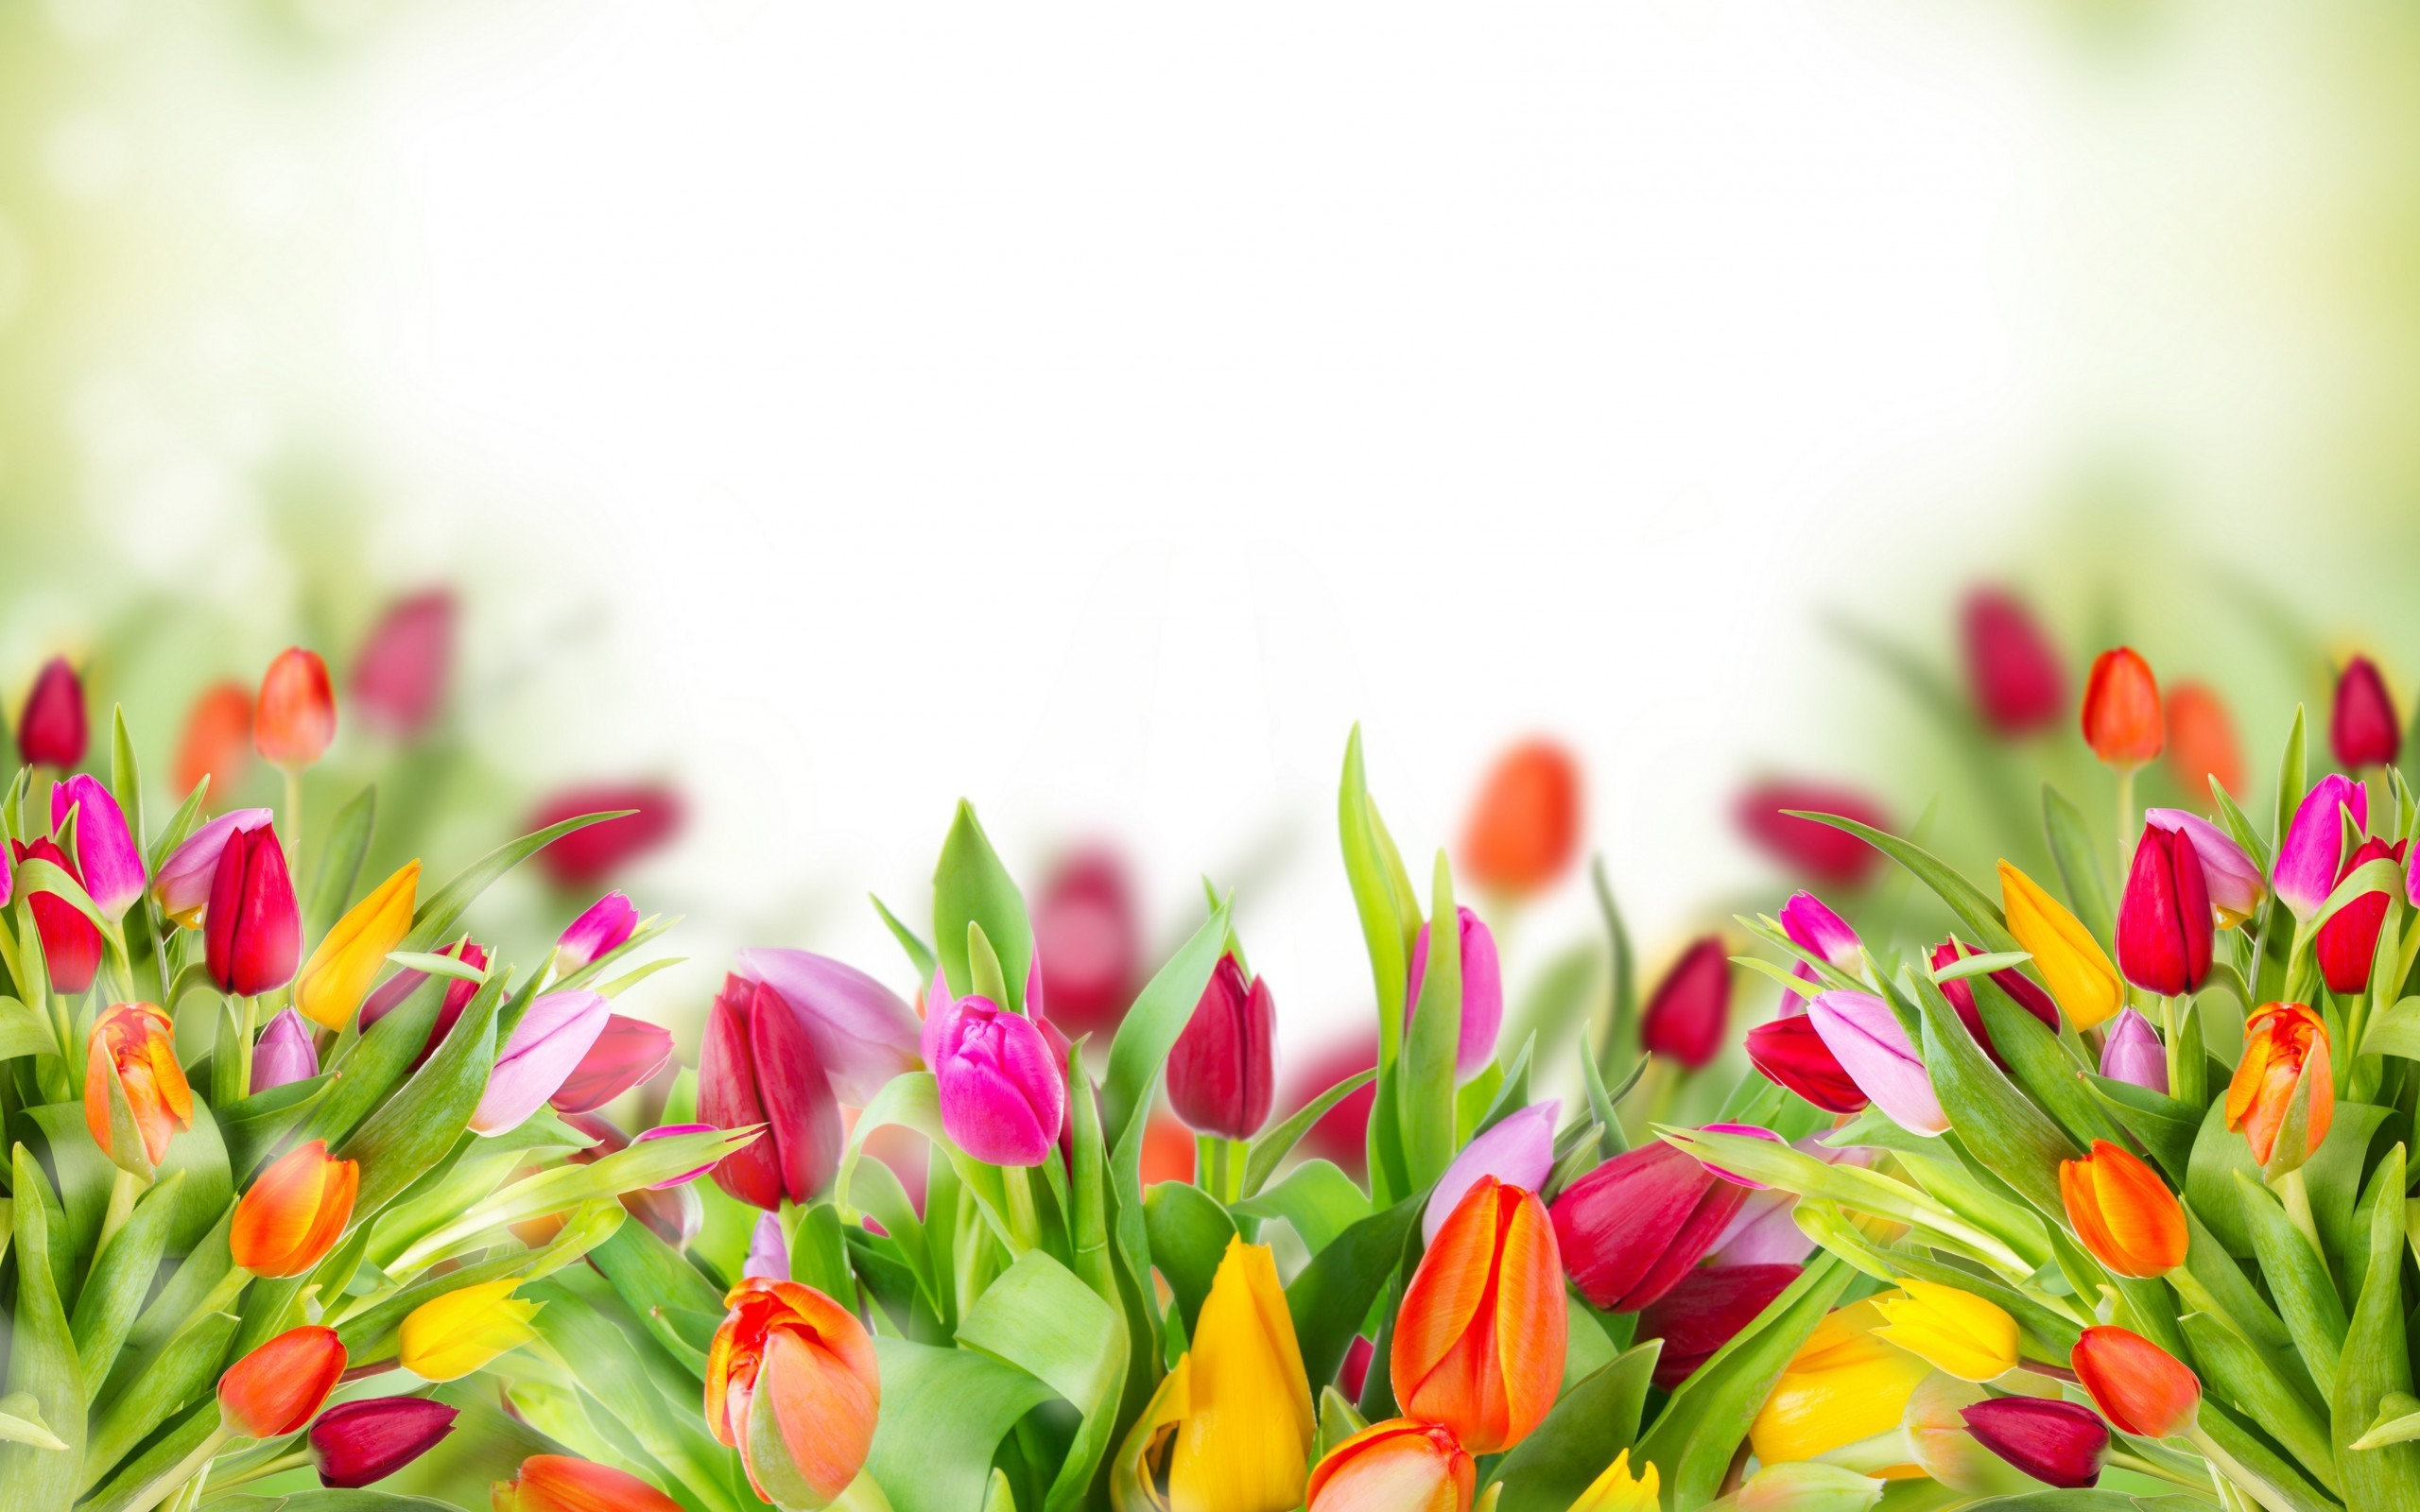 2560x1600 Full HD p Tulips Wallpapers HD Desktop Backgrounds x